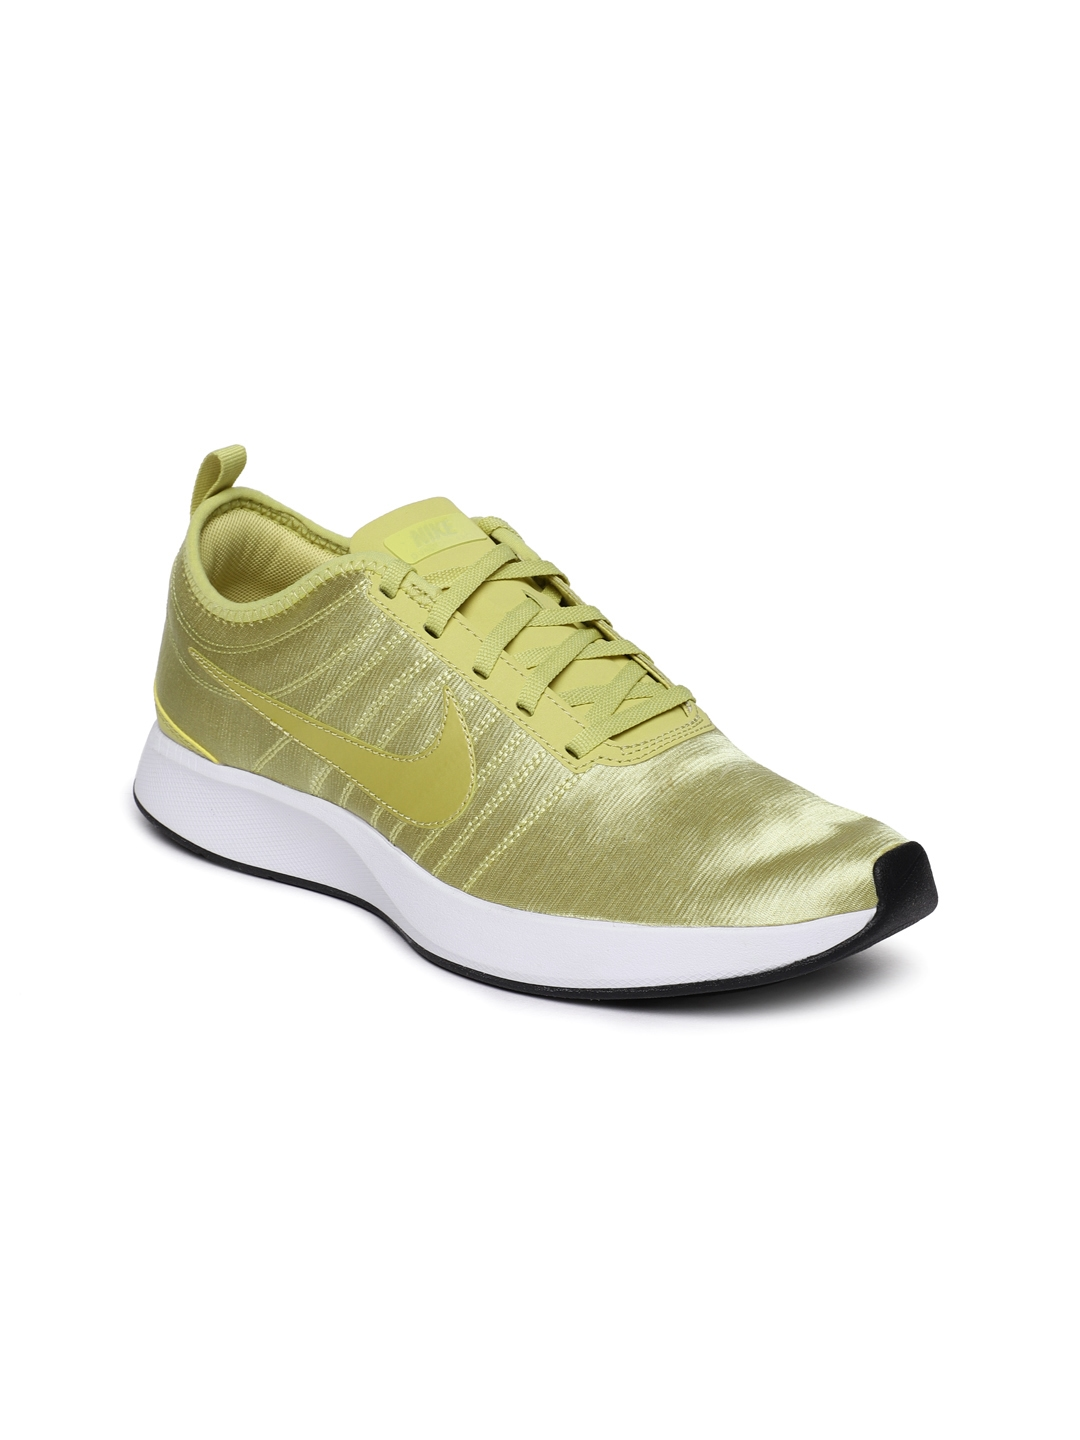 Buy Nike Women Gold Toned Dualtone Racer SE Sneakers - Casual Shoes ... 6795e07c0